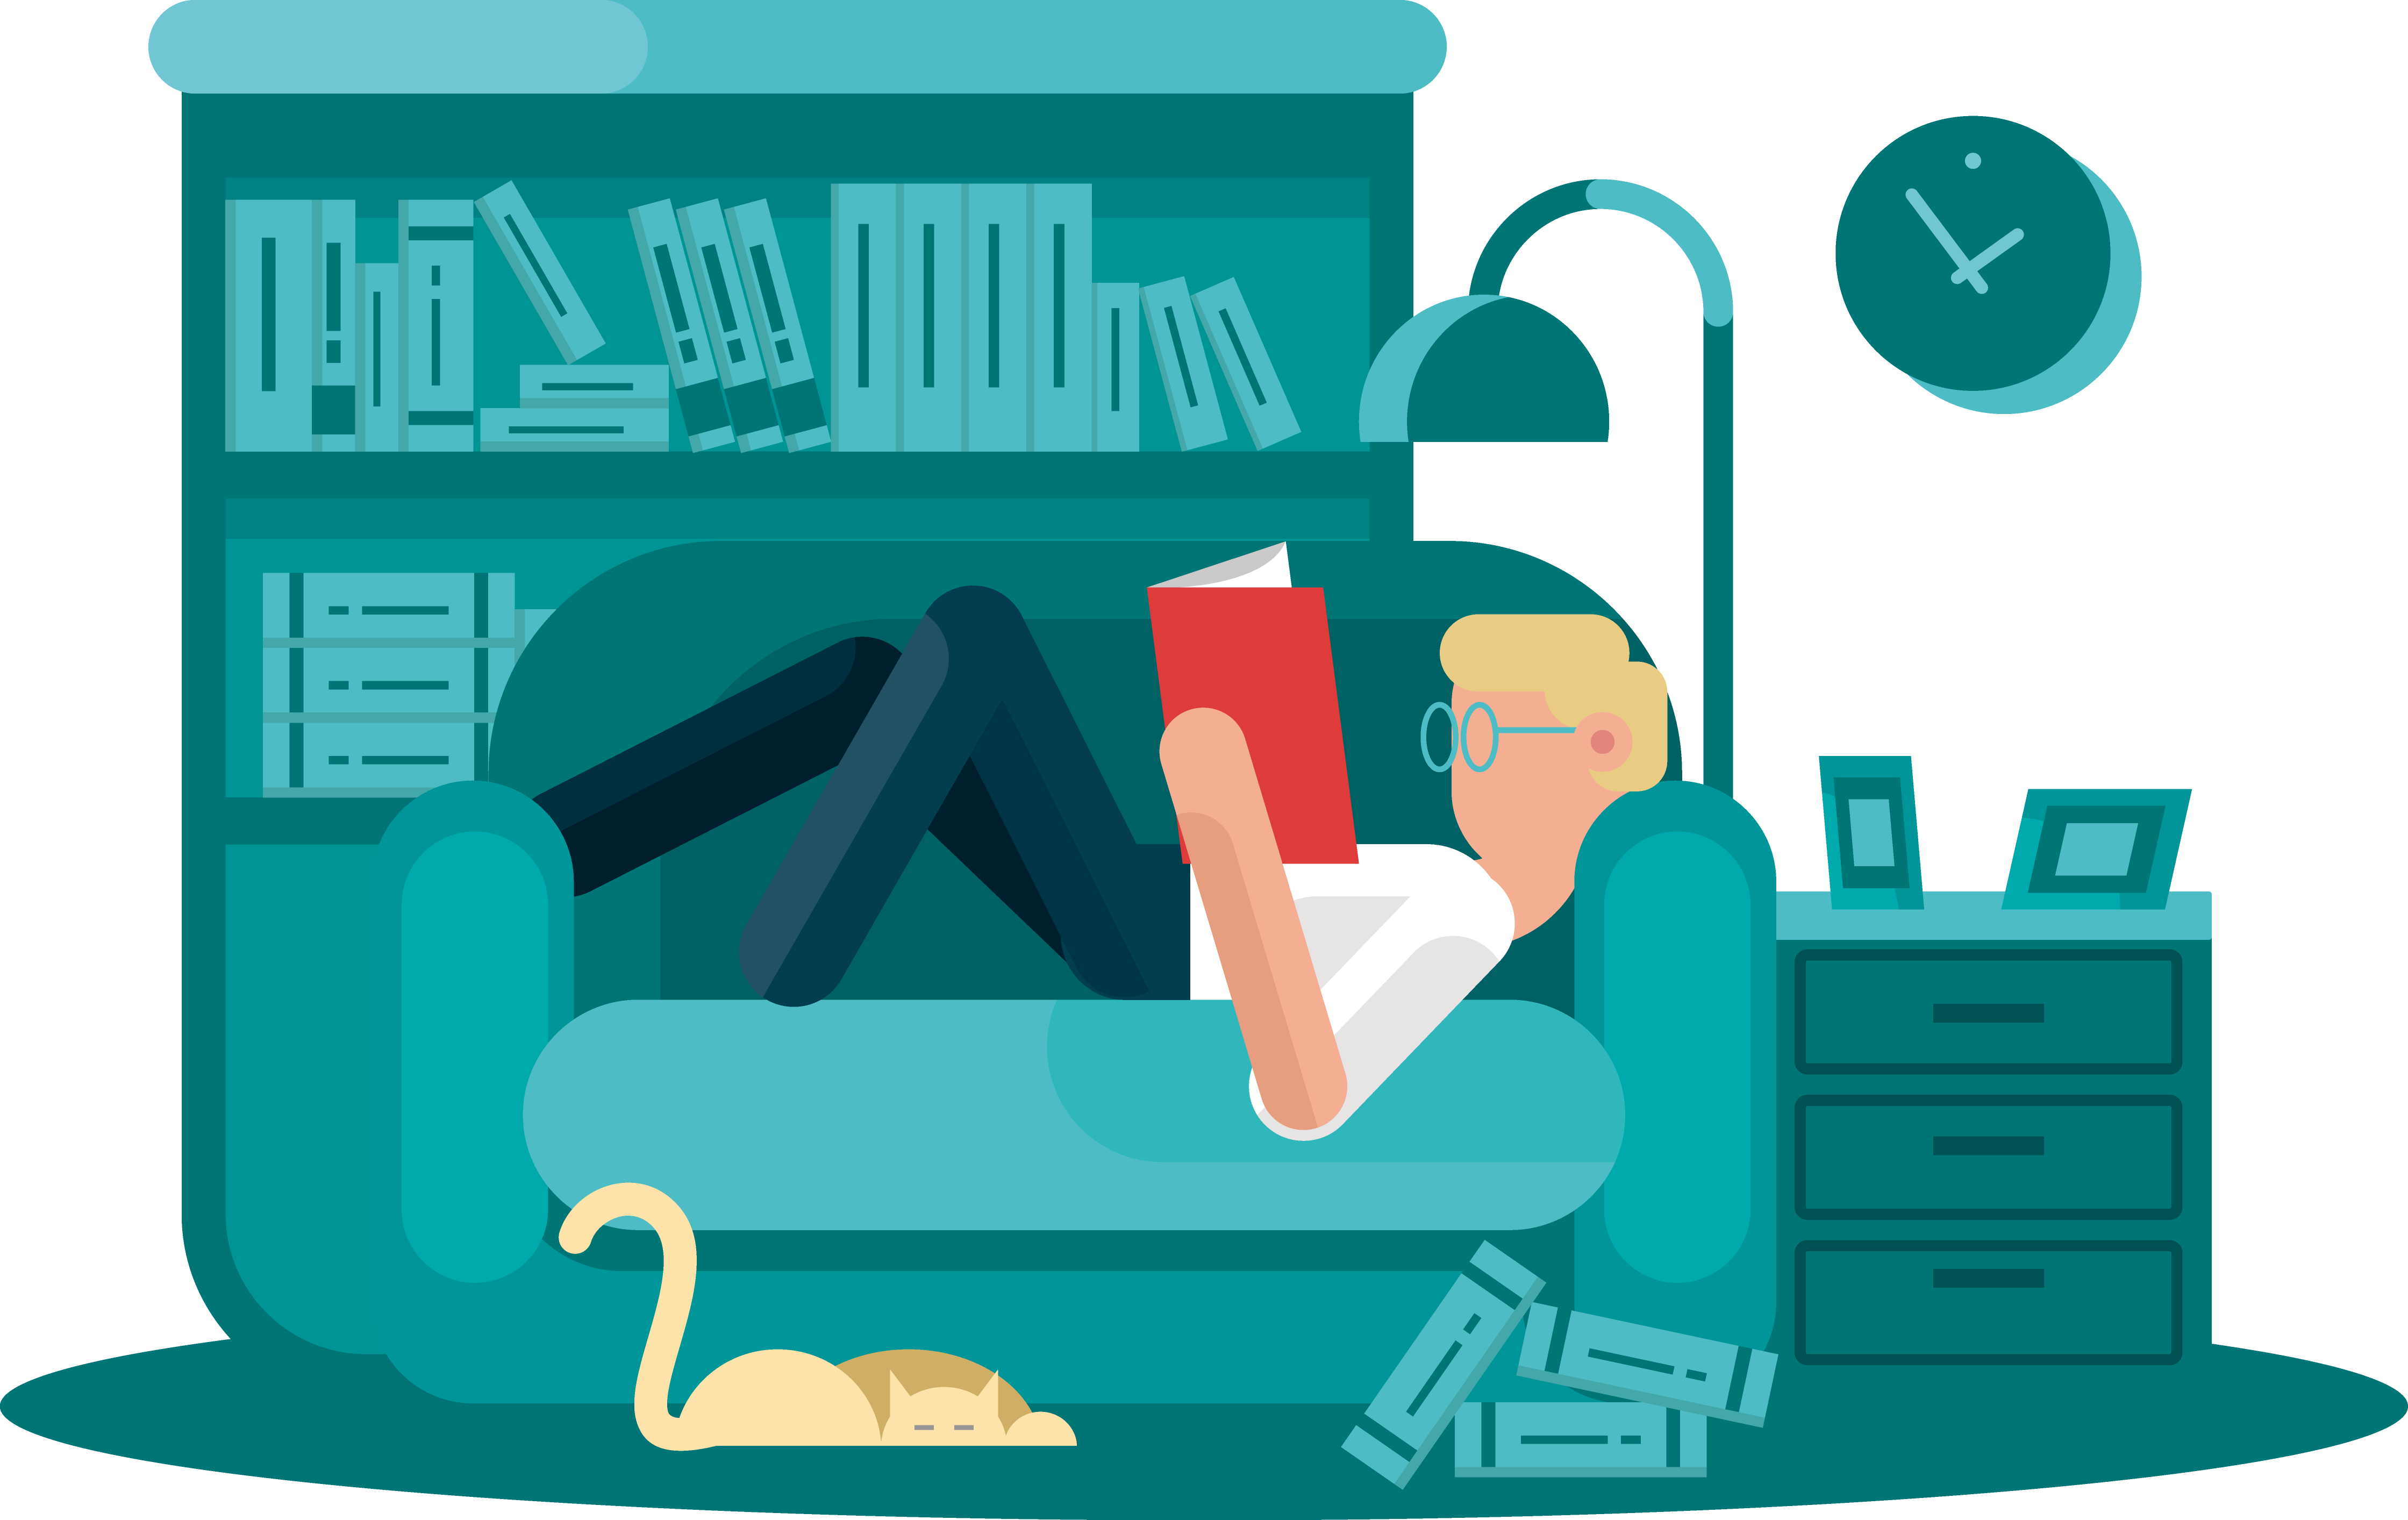 Couch clipart comic. Reading book cartoon illustration